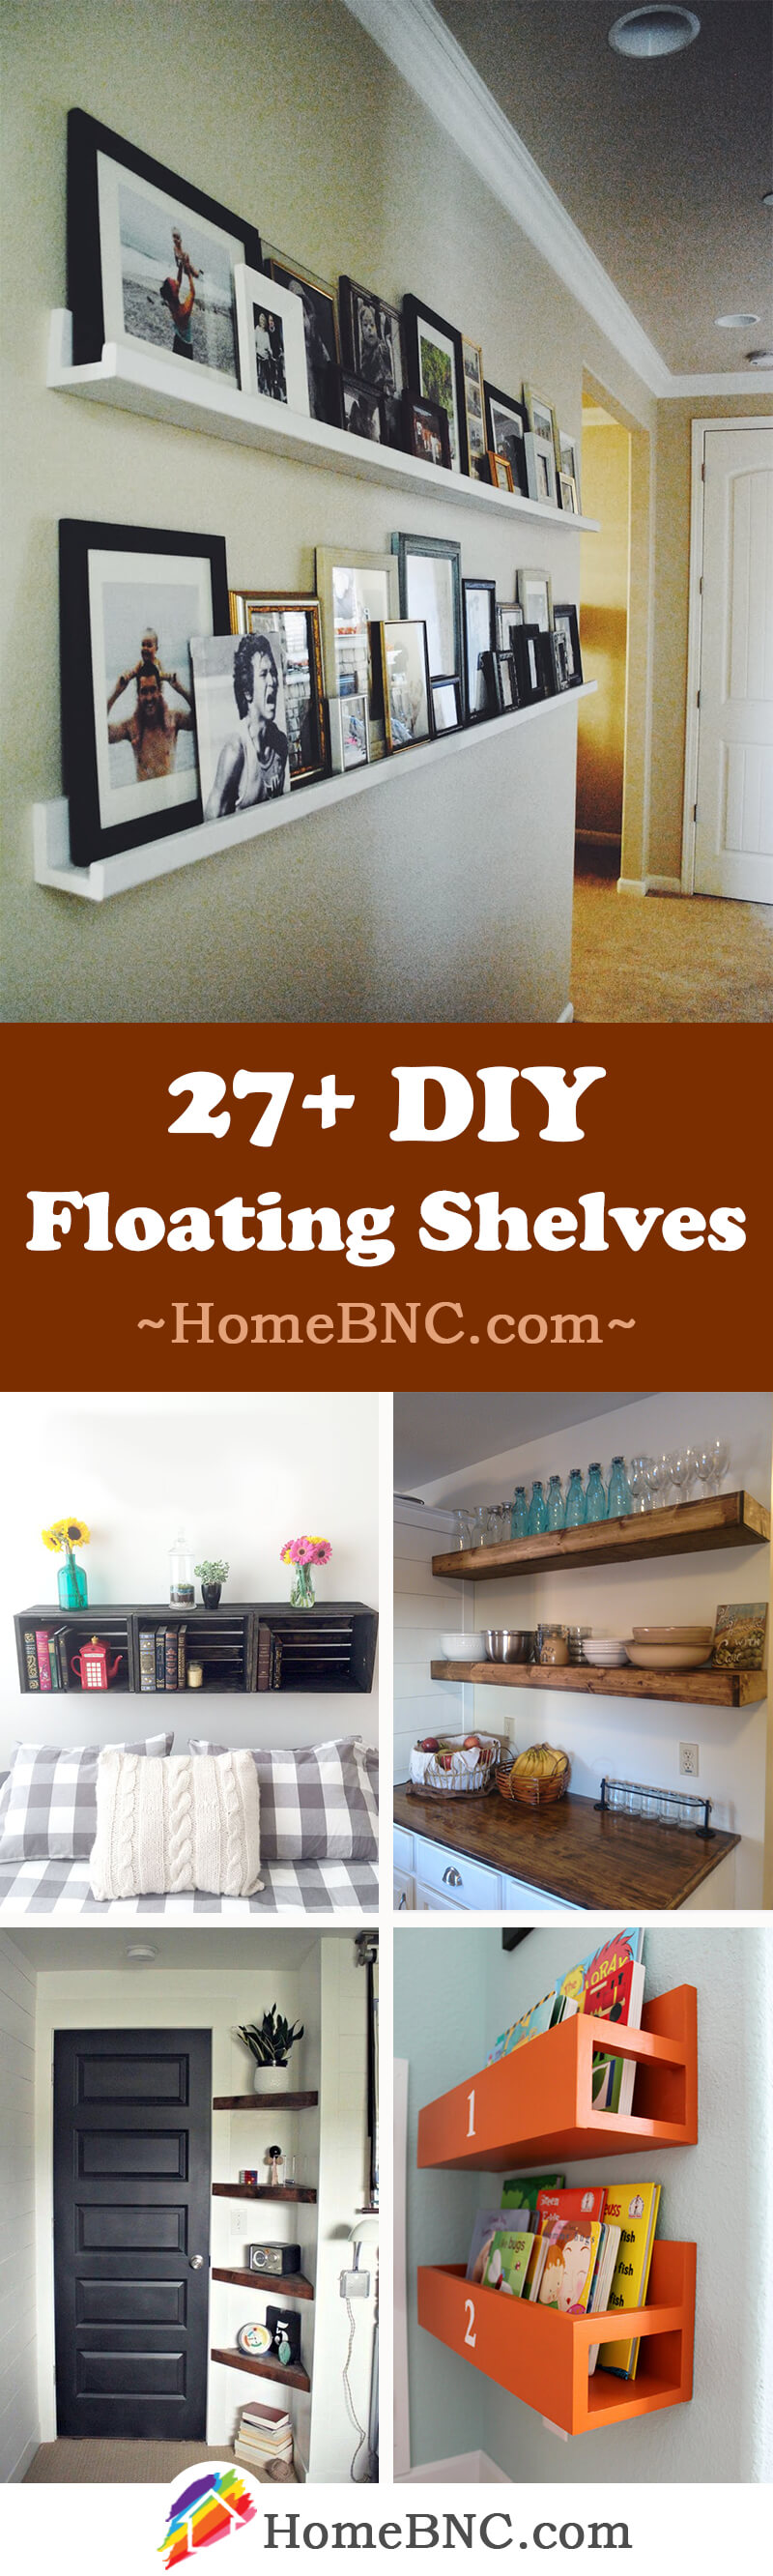 best diy floating shelf ideas and designs for share homebnc box shelves bold save space distance between closet wooden kitchen storage rack bookshelf alternatives barn wood target